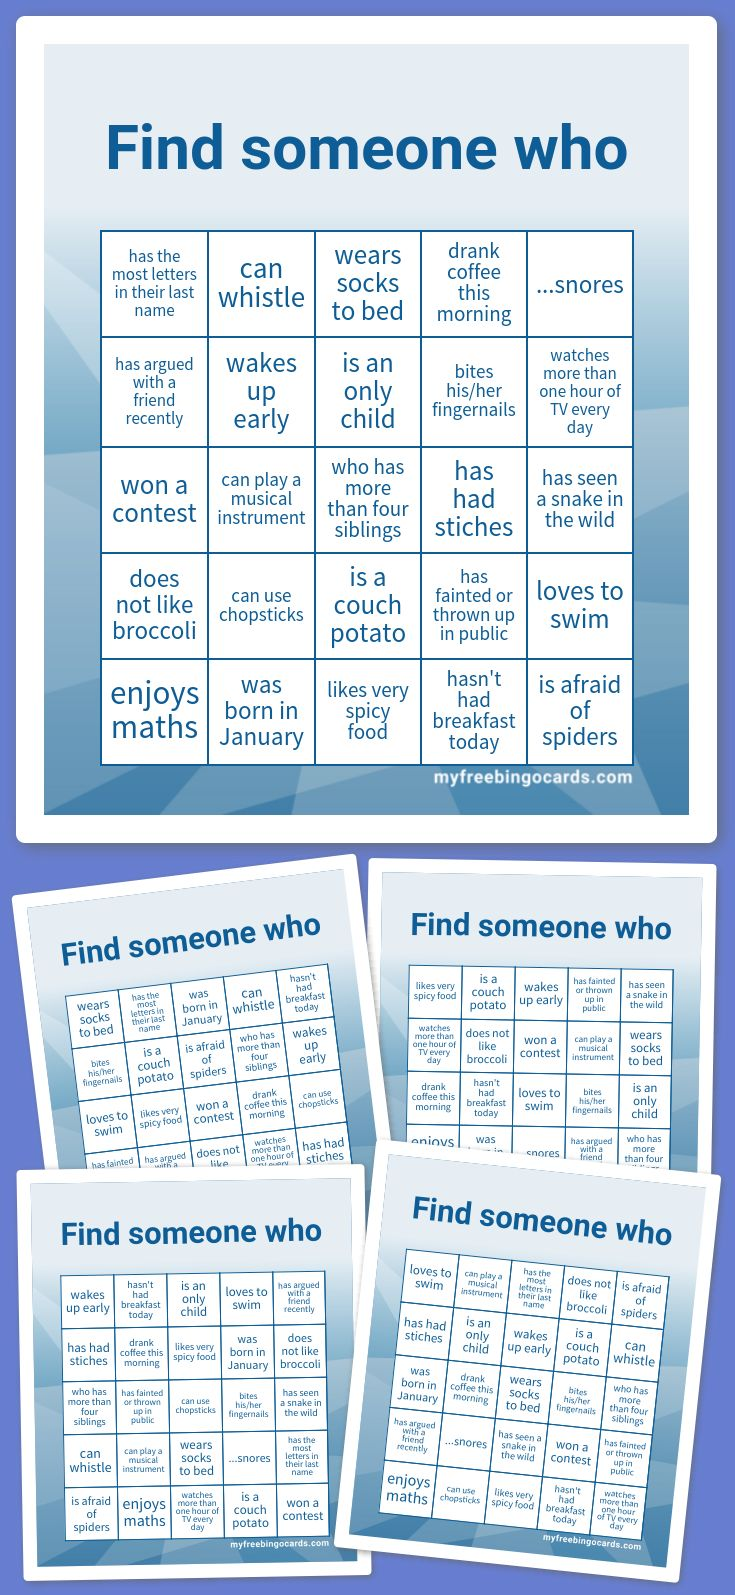 Play Virtual Find Someone Who Bingo With Your Friends For Free On Any Device Customize The Bingo Cards And Generate Printab Bingo Cards Free Bingo Cards Bingo